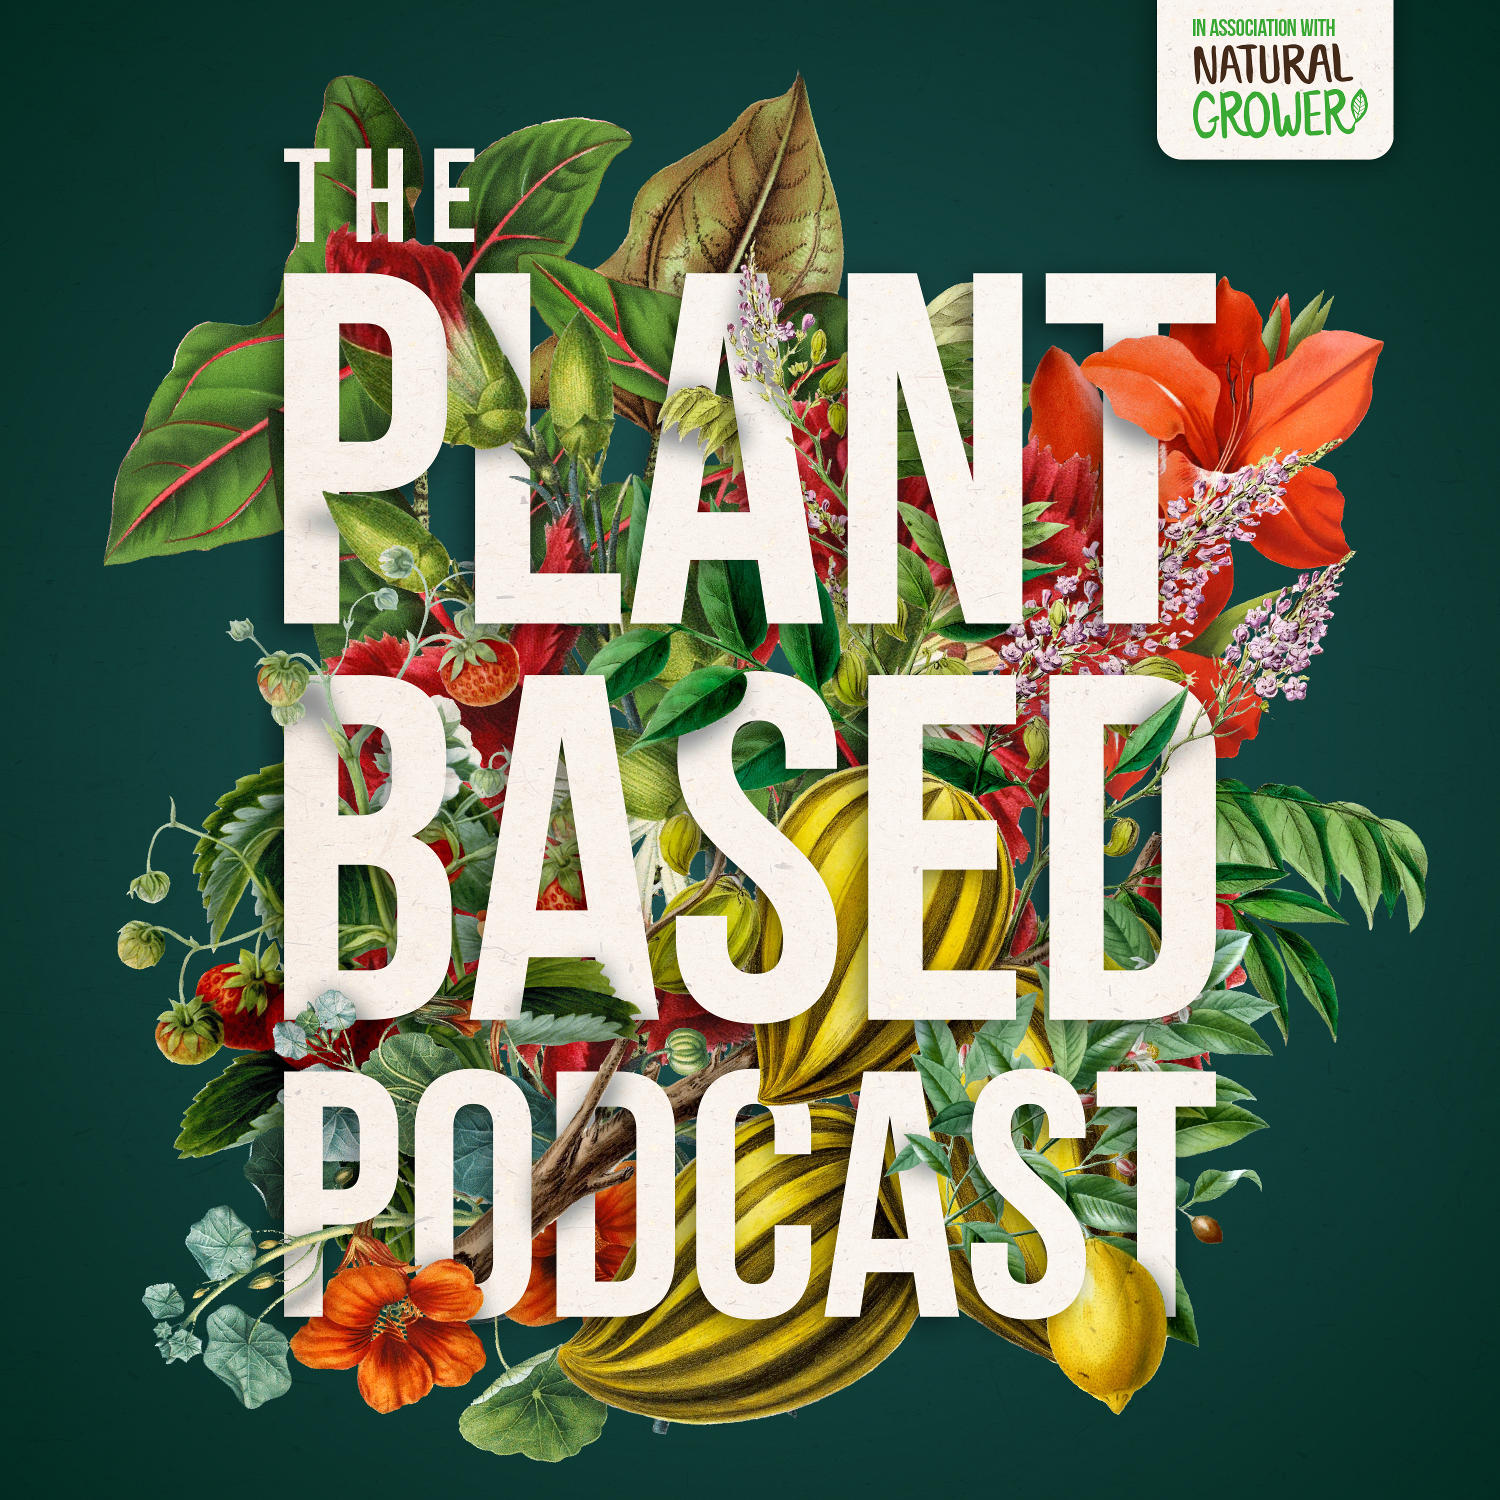 The Plant Based Podcast S3 Episode Five - It's time for the Chelsea Flower Show, but not as you know it!